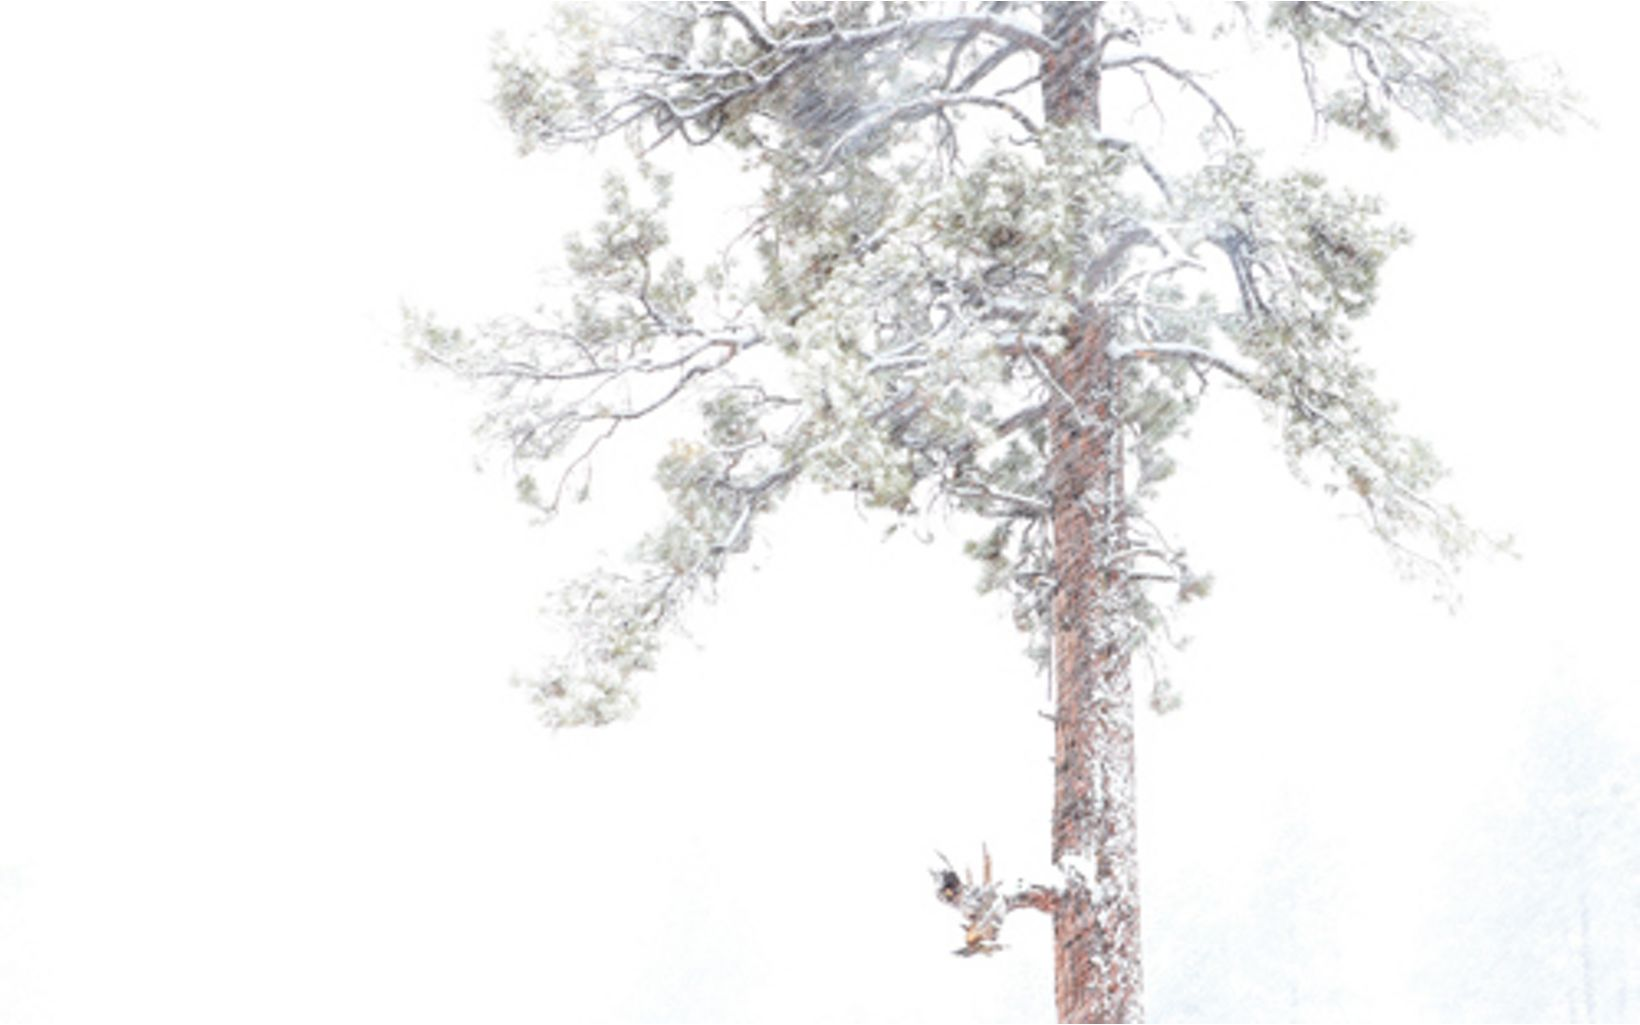 A conifer tree coated in white snow against a white sky.